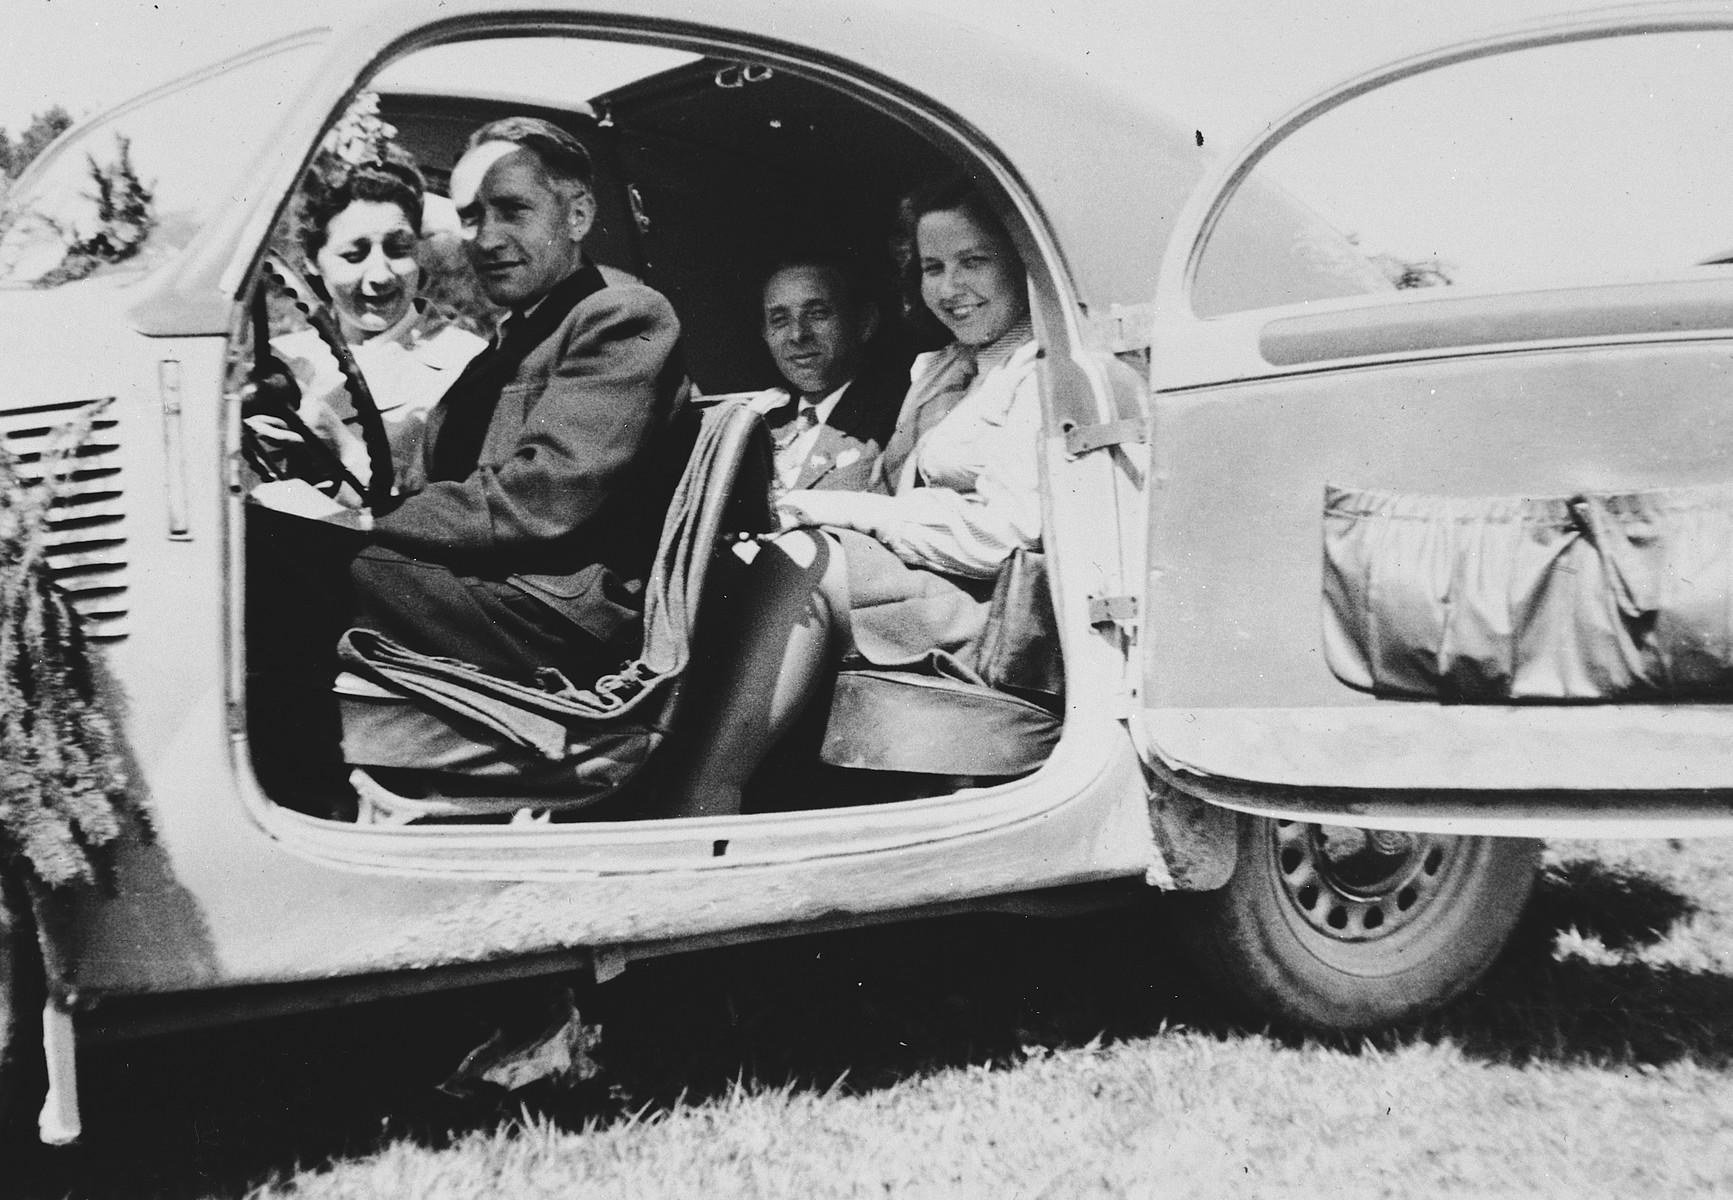 Jewish DPsfrom the Landsberg camp go for an automobile ride.  Among those pictured are Max Freidman (seated in the back seat) and his daughter-in-law Rachel, seated next to him in a white shirt and tie.